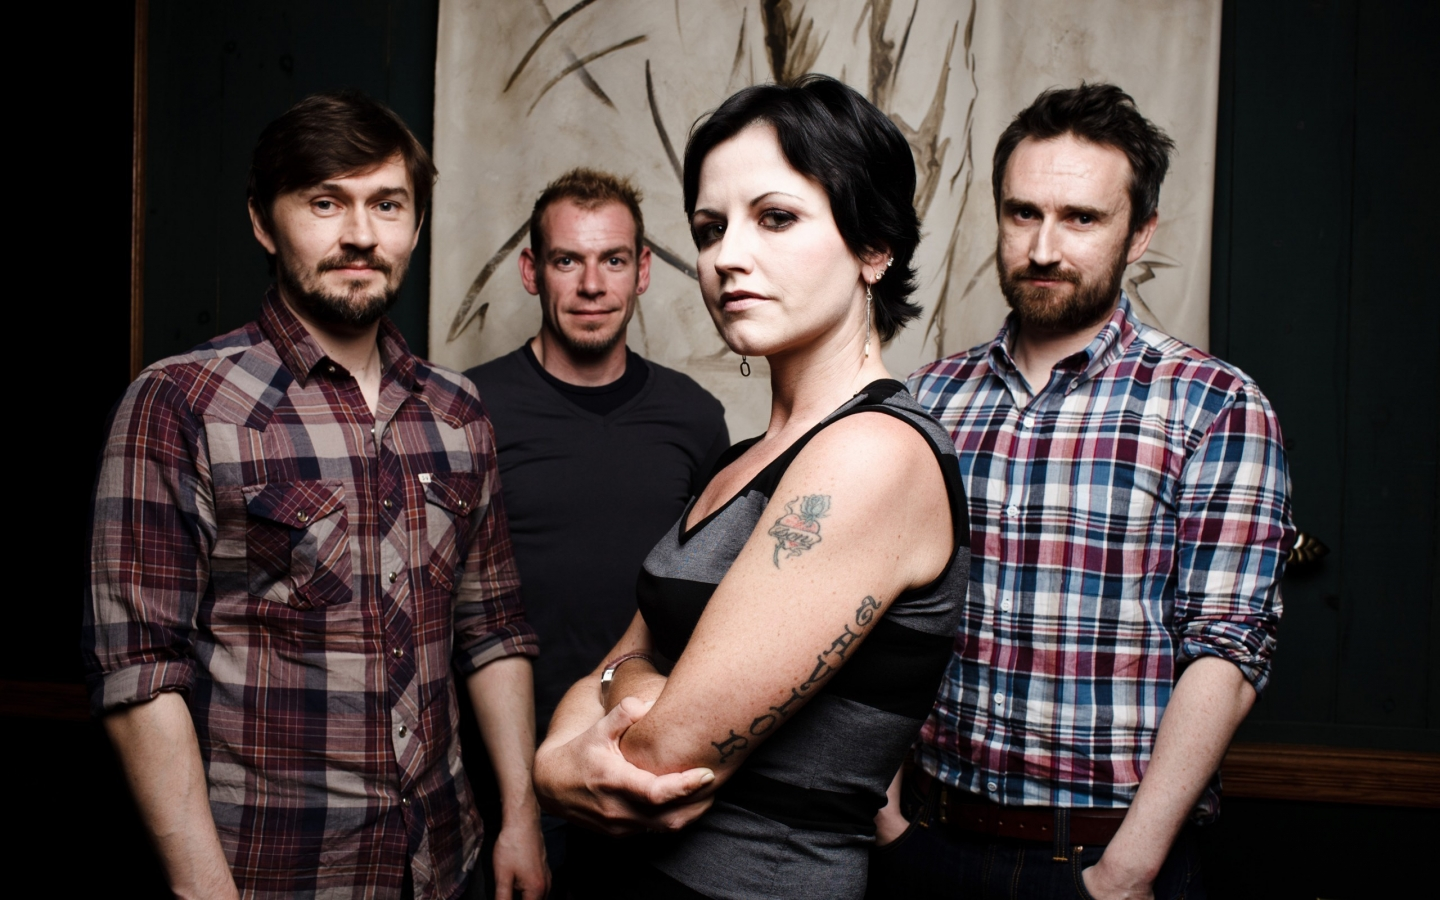 The Cranberries for 1440 x 900 widescreen resolution